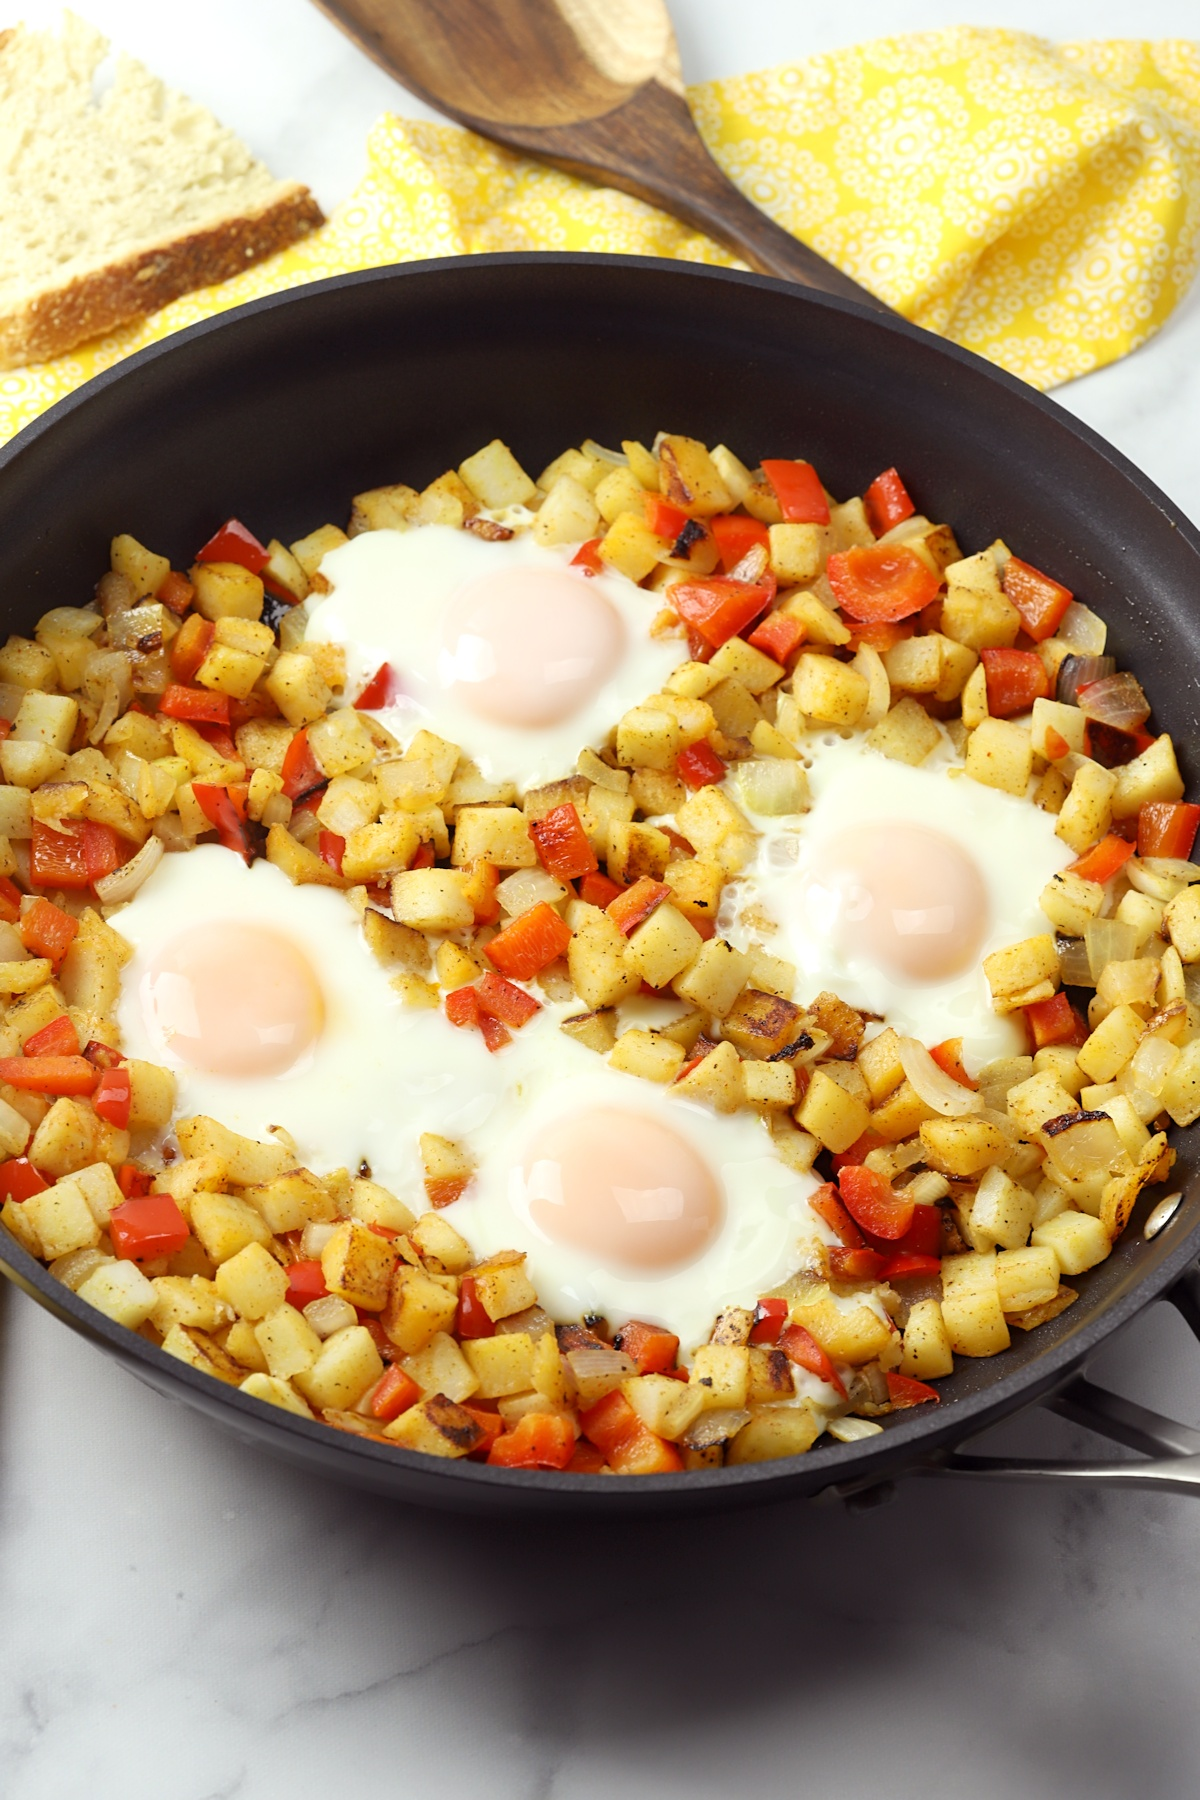 Sunny side up eggs nestled in a skillet of hash browns.